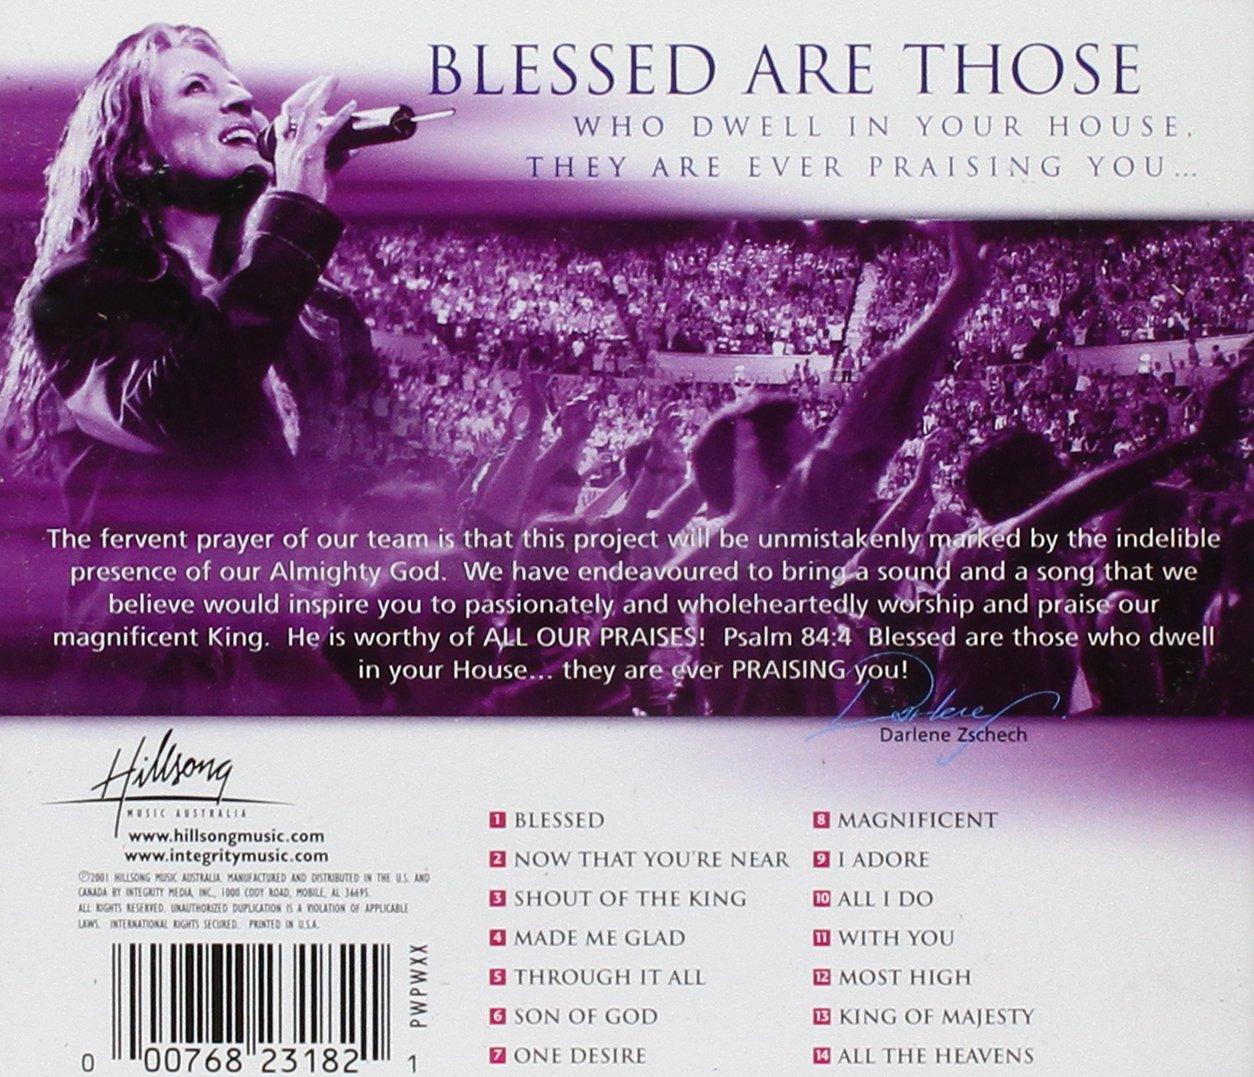 Dwell in your house hillsong mp3 download